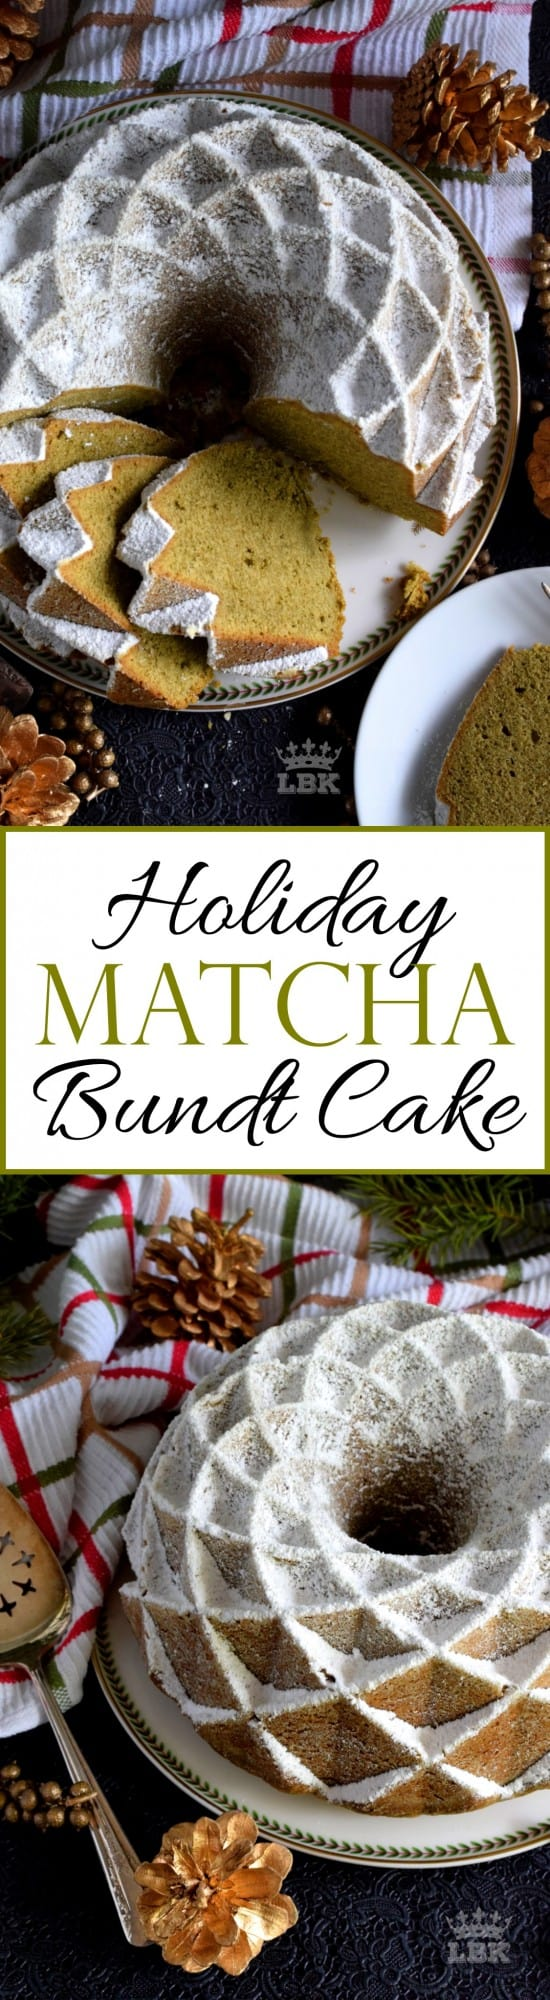 Holiday Matcha Bundt Cake - This bundt is green for the holidays! If you've never baked a cake with matcha, you must do it immediately! It's one of my favourites! #matcha #cake #bundt #bundtbakers #christmas #holiday #green